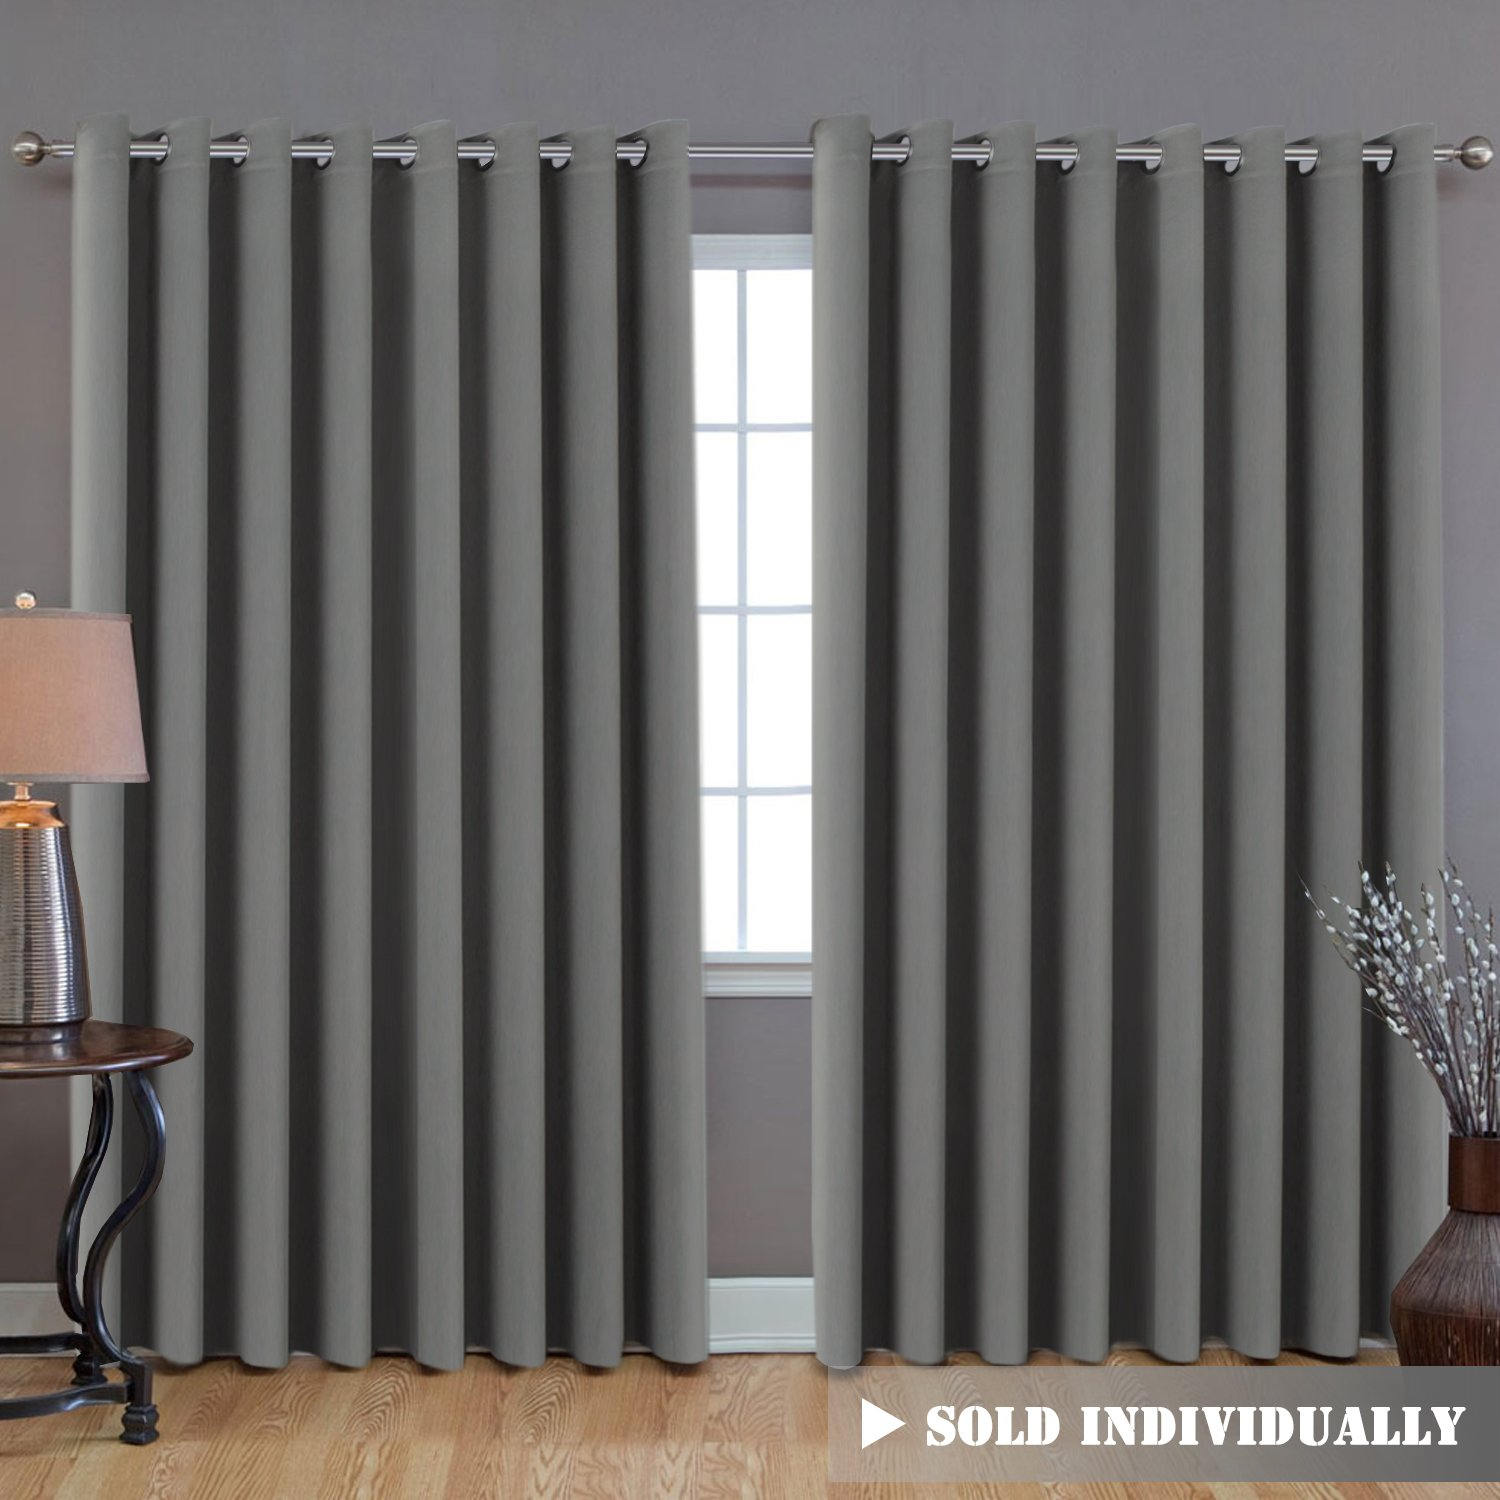 Premium Blackout Wider Curtains for Patio & Yard (100 W by 84 L), Thermal Insulated Room Divider Curtain Panel (Total Privacy, Large Size 7' Tall x 8.5' Wide) - Ivory H.Versailtex